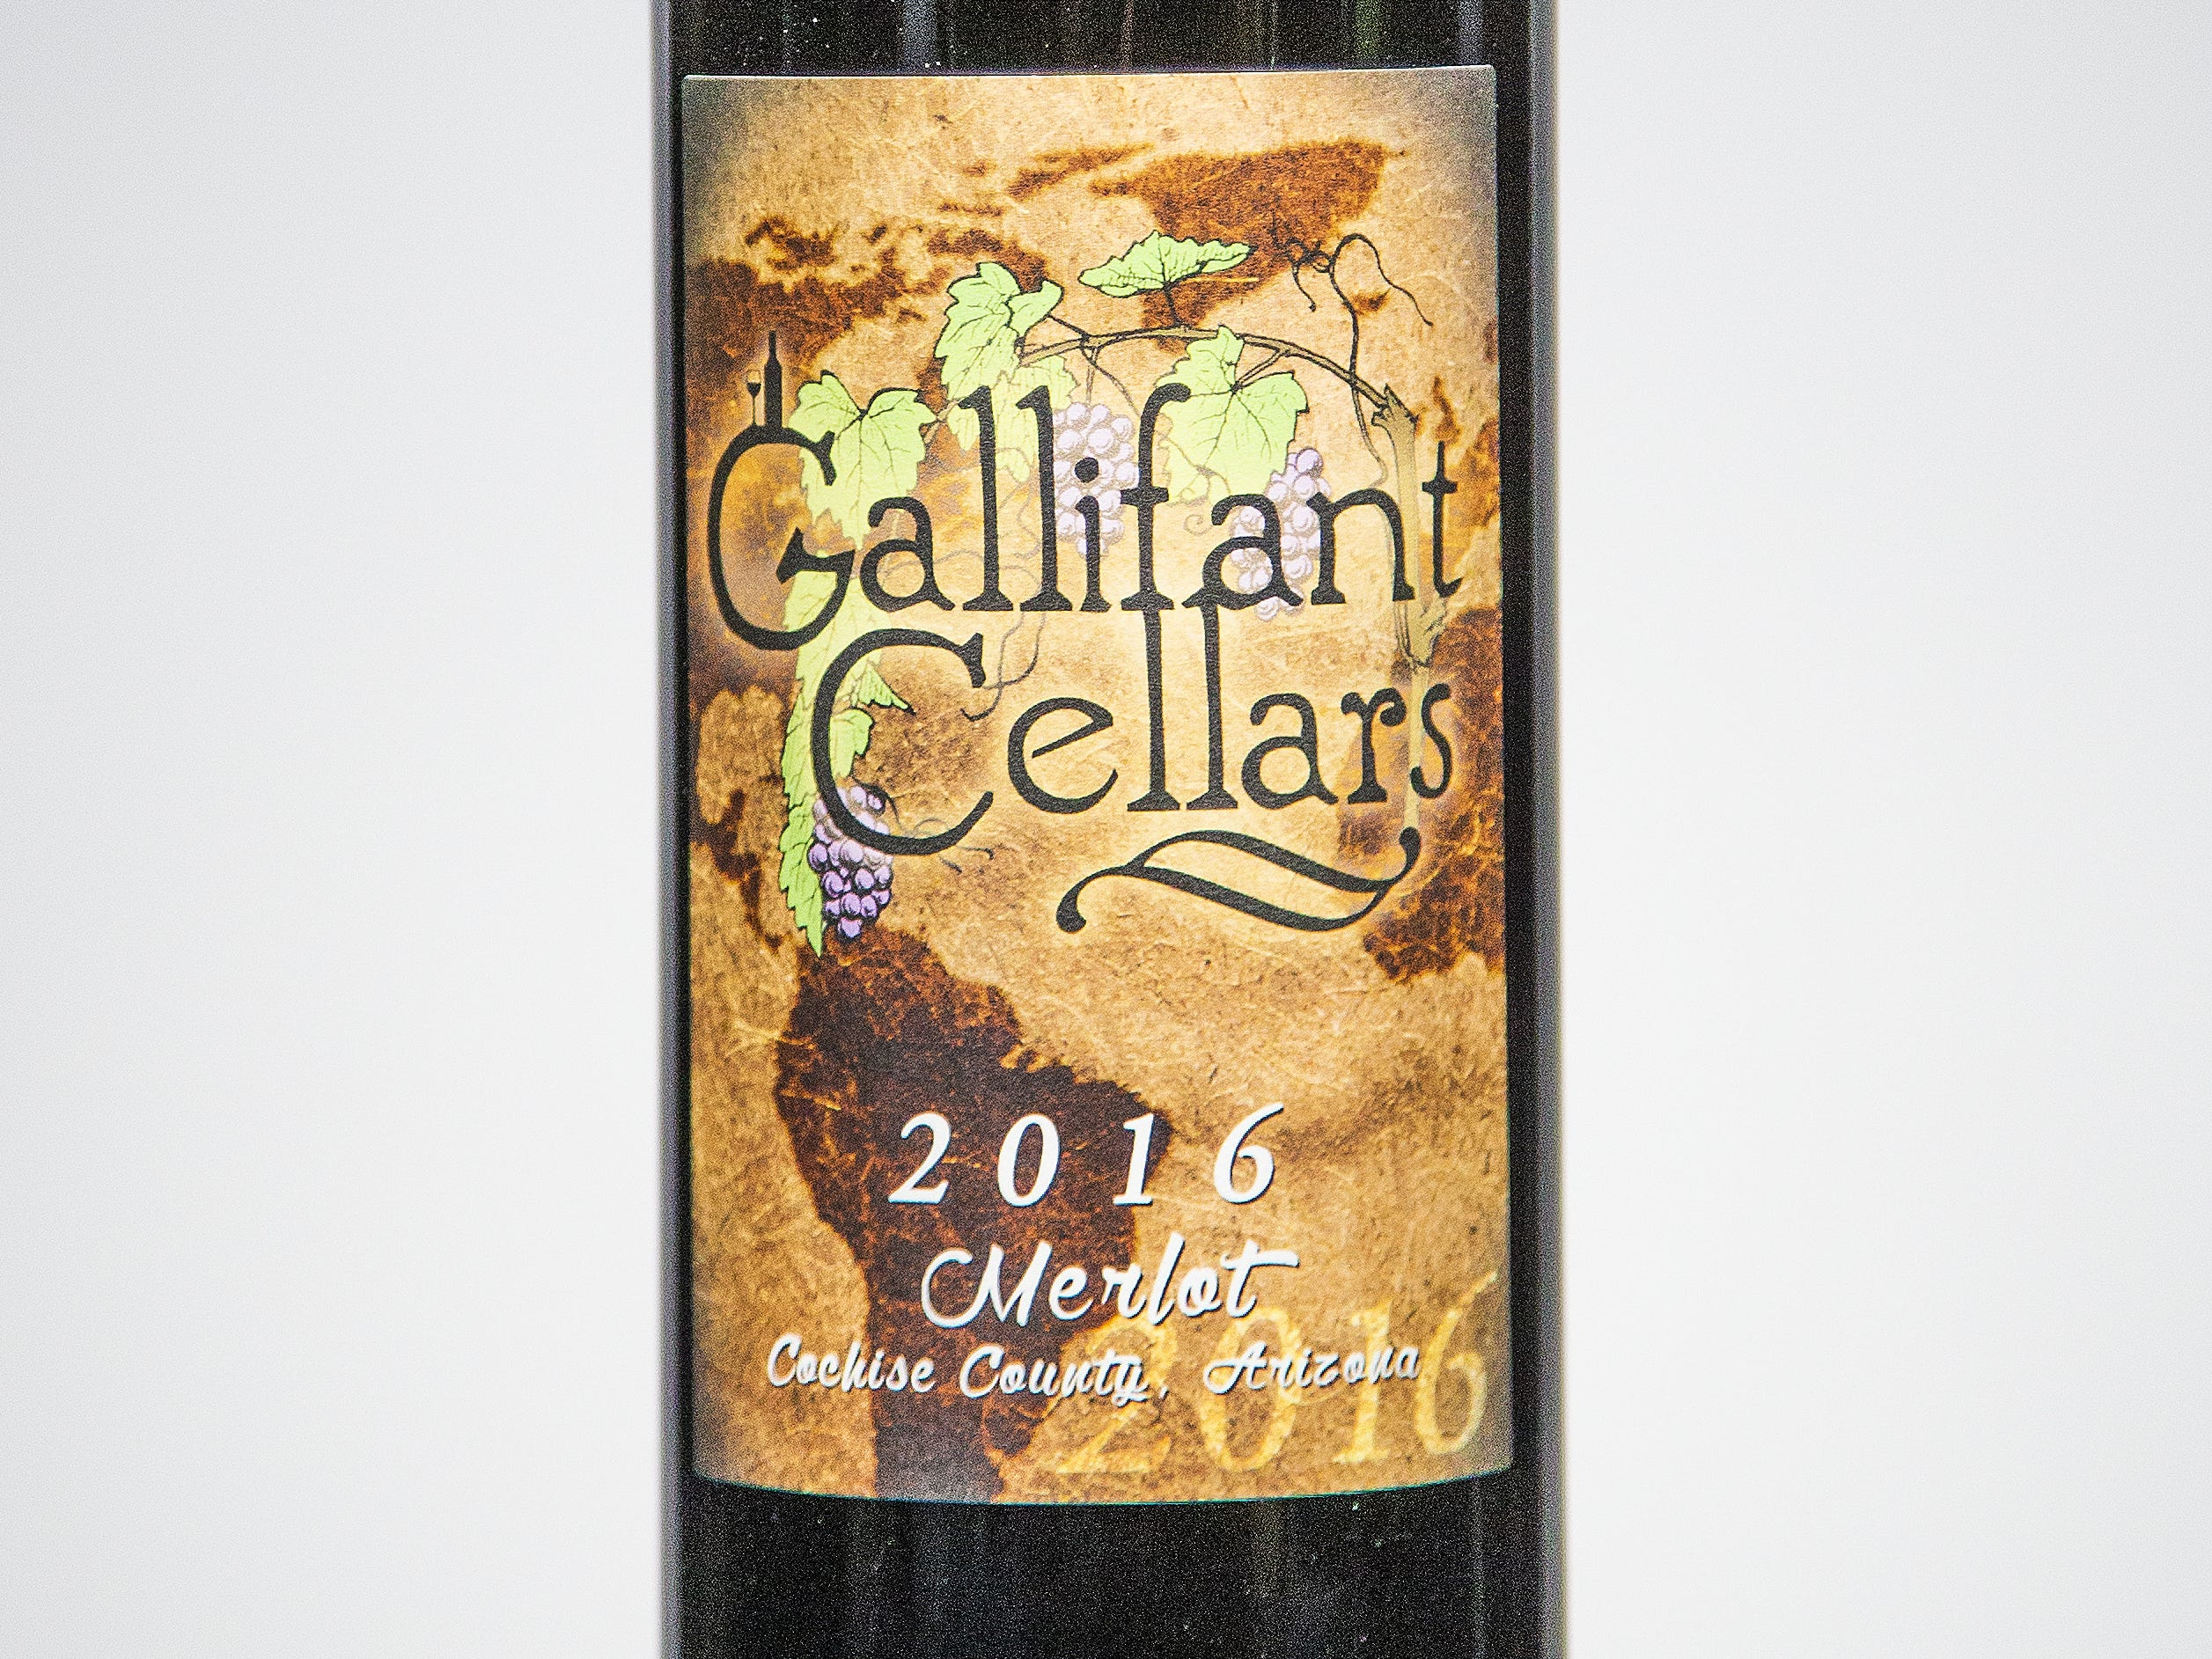 Best Merlot: Gallifant Cellars Merlot 2016.